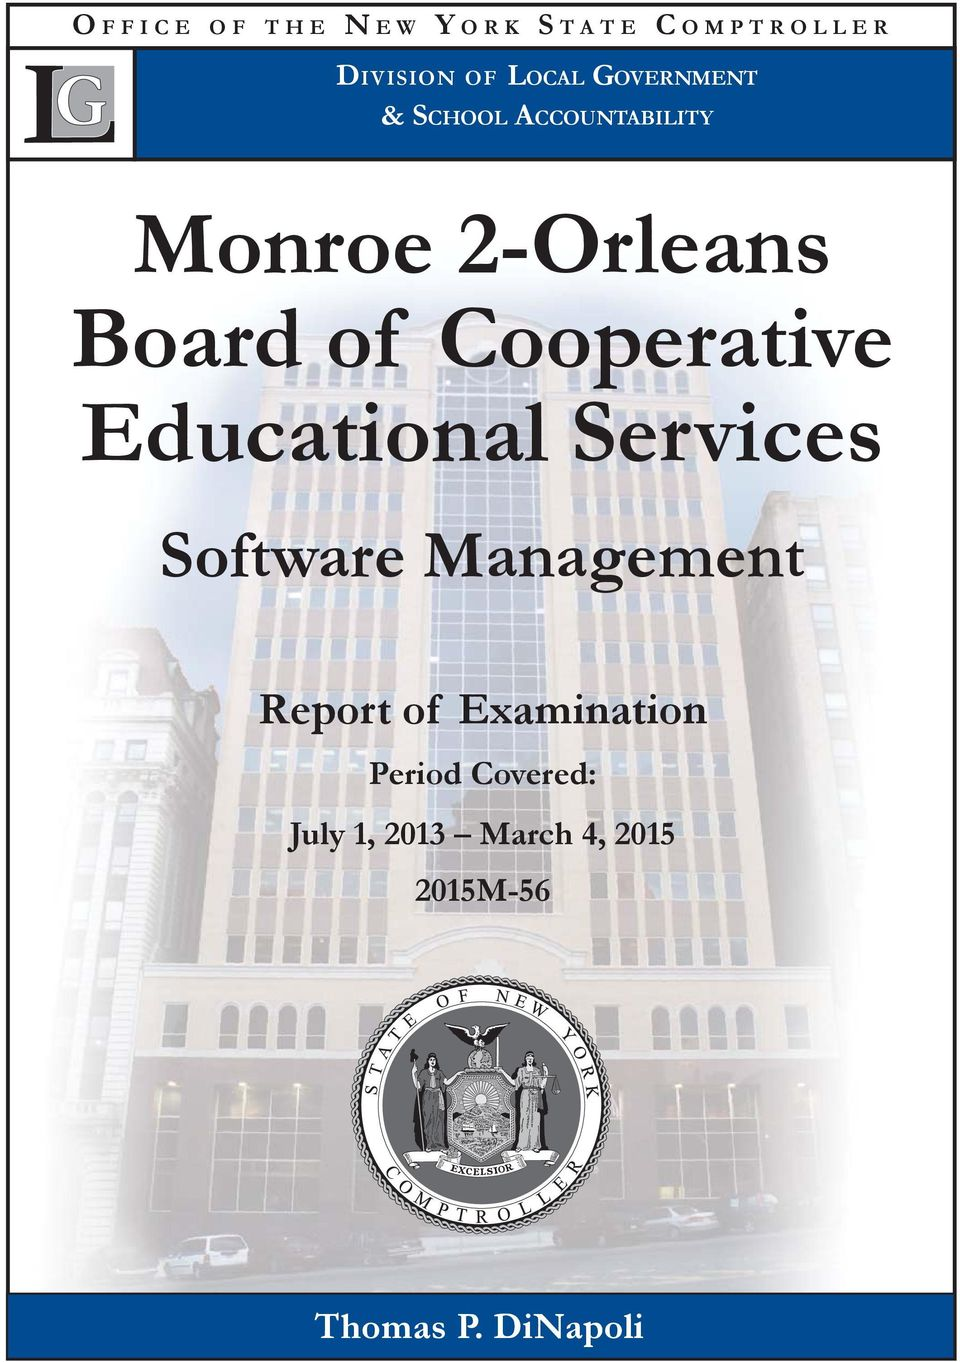 Cooperative Educational Services Software Management Report of